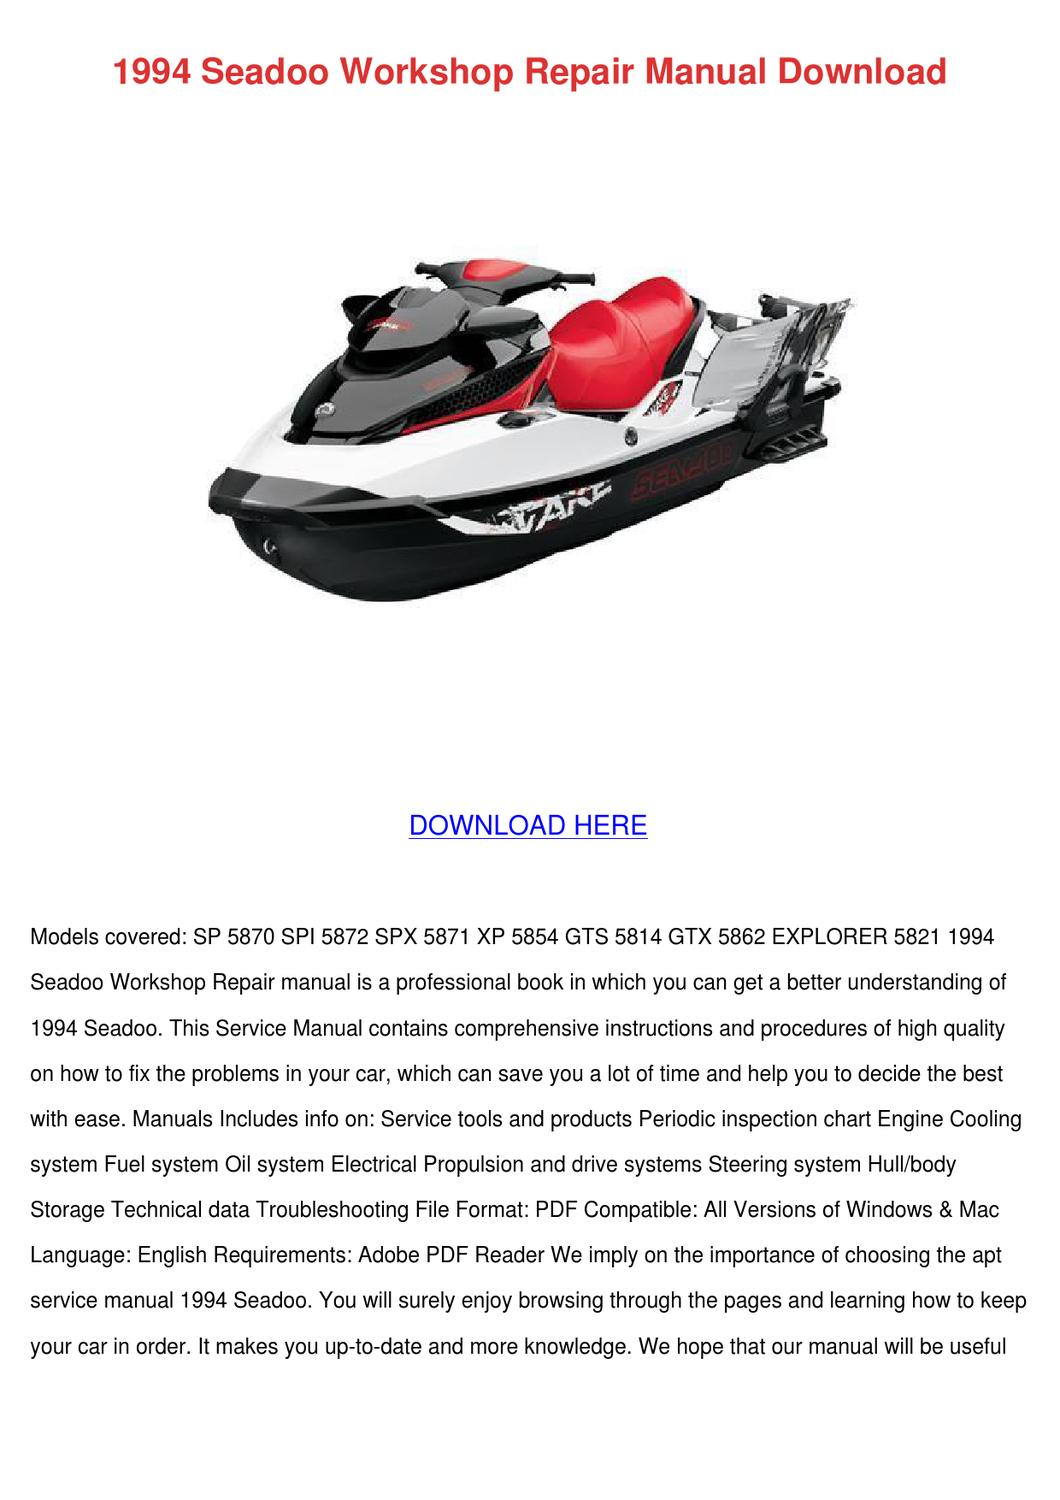 1994 Seadoo Workshop Repair Manual Download By Heidigarris